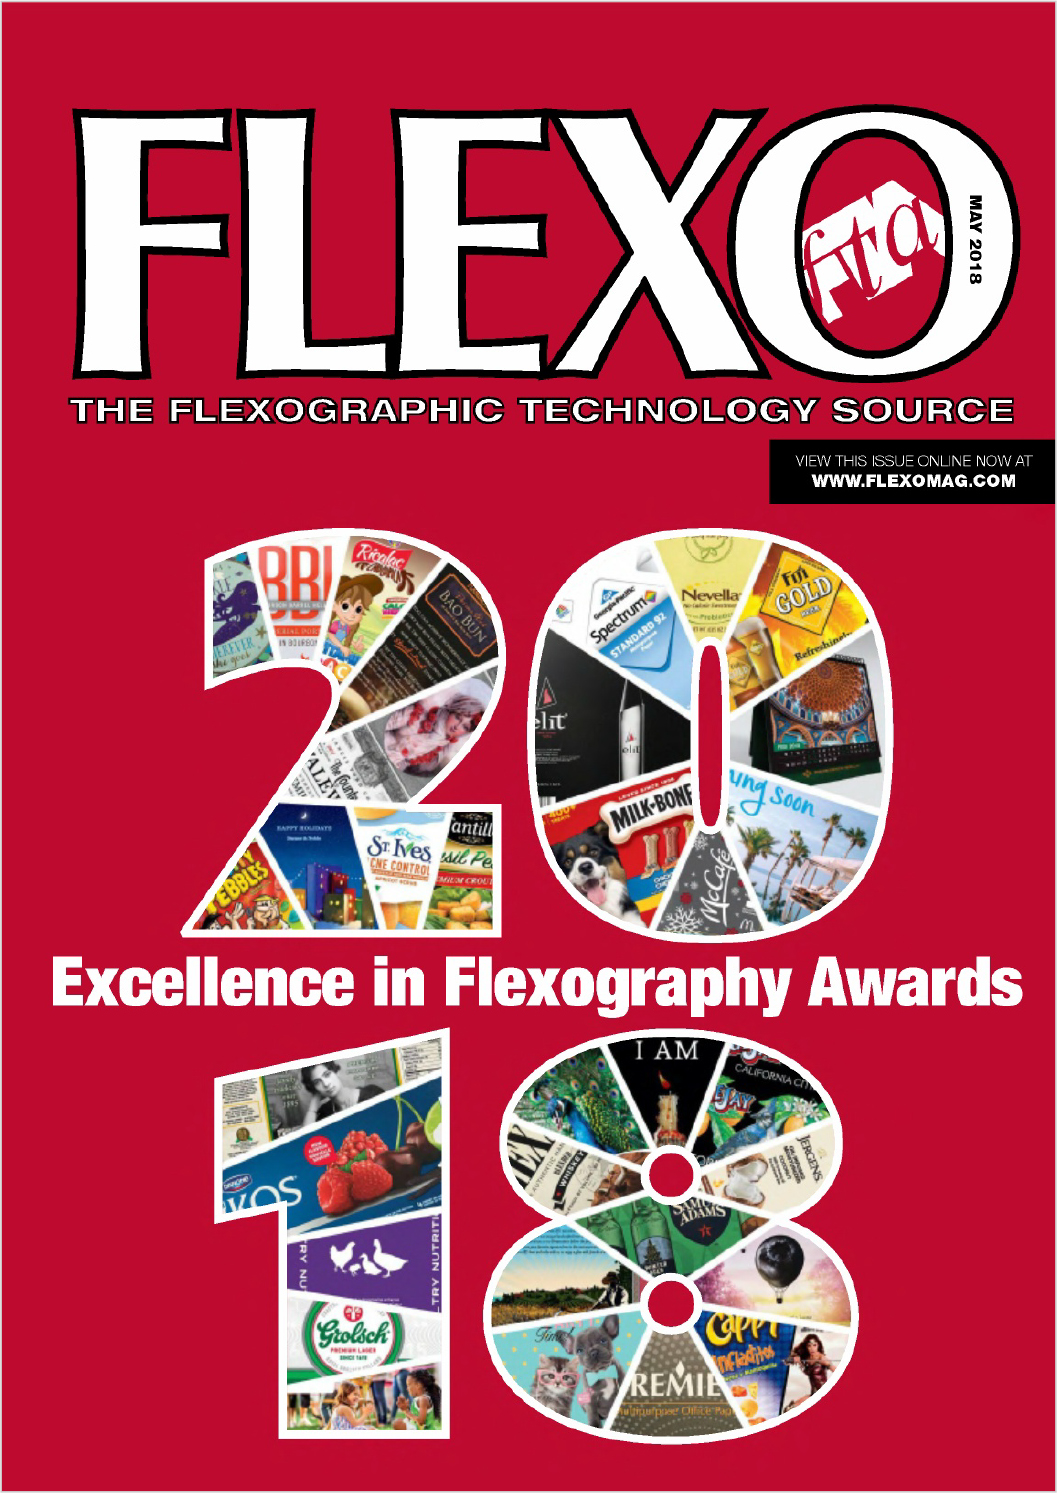 Flexo screening Ultra HD Bellissima DMS receives 2018 FTA Technical Innovation Award